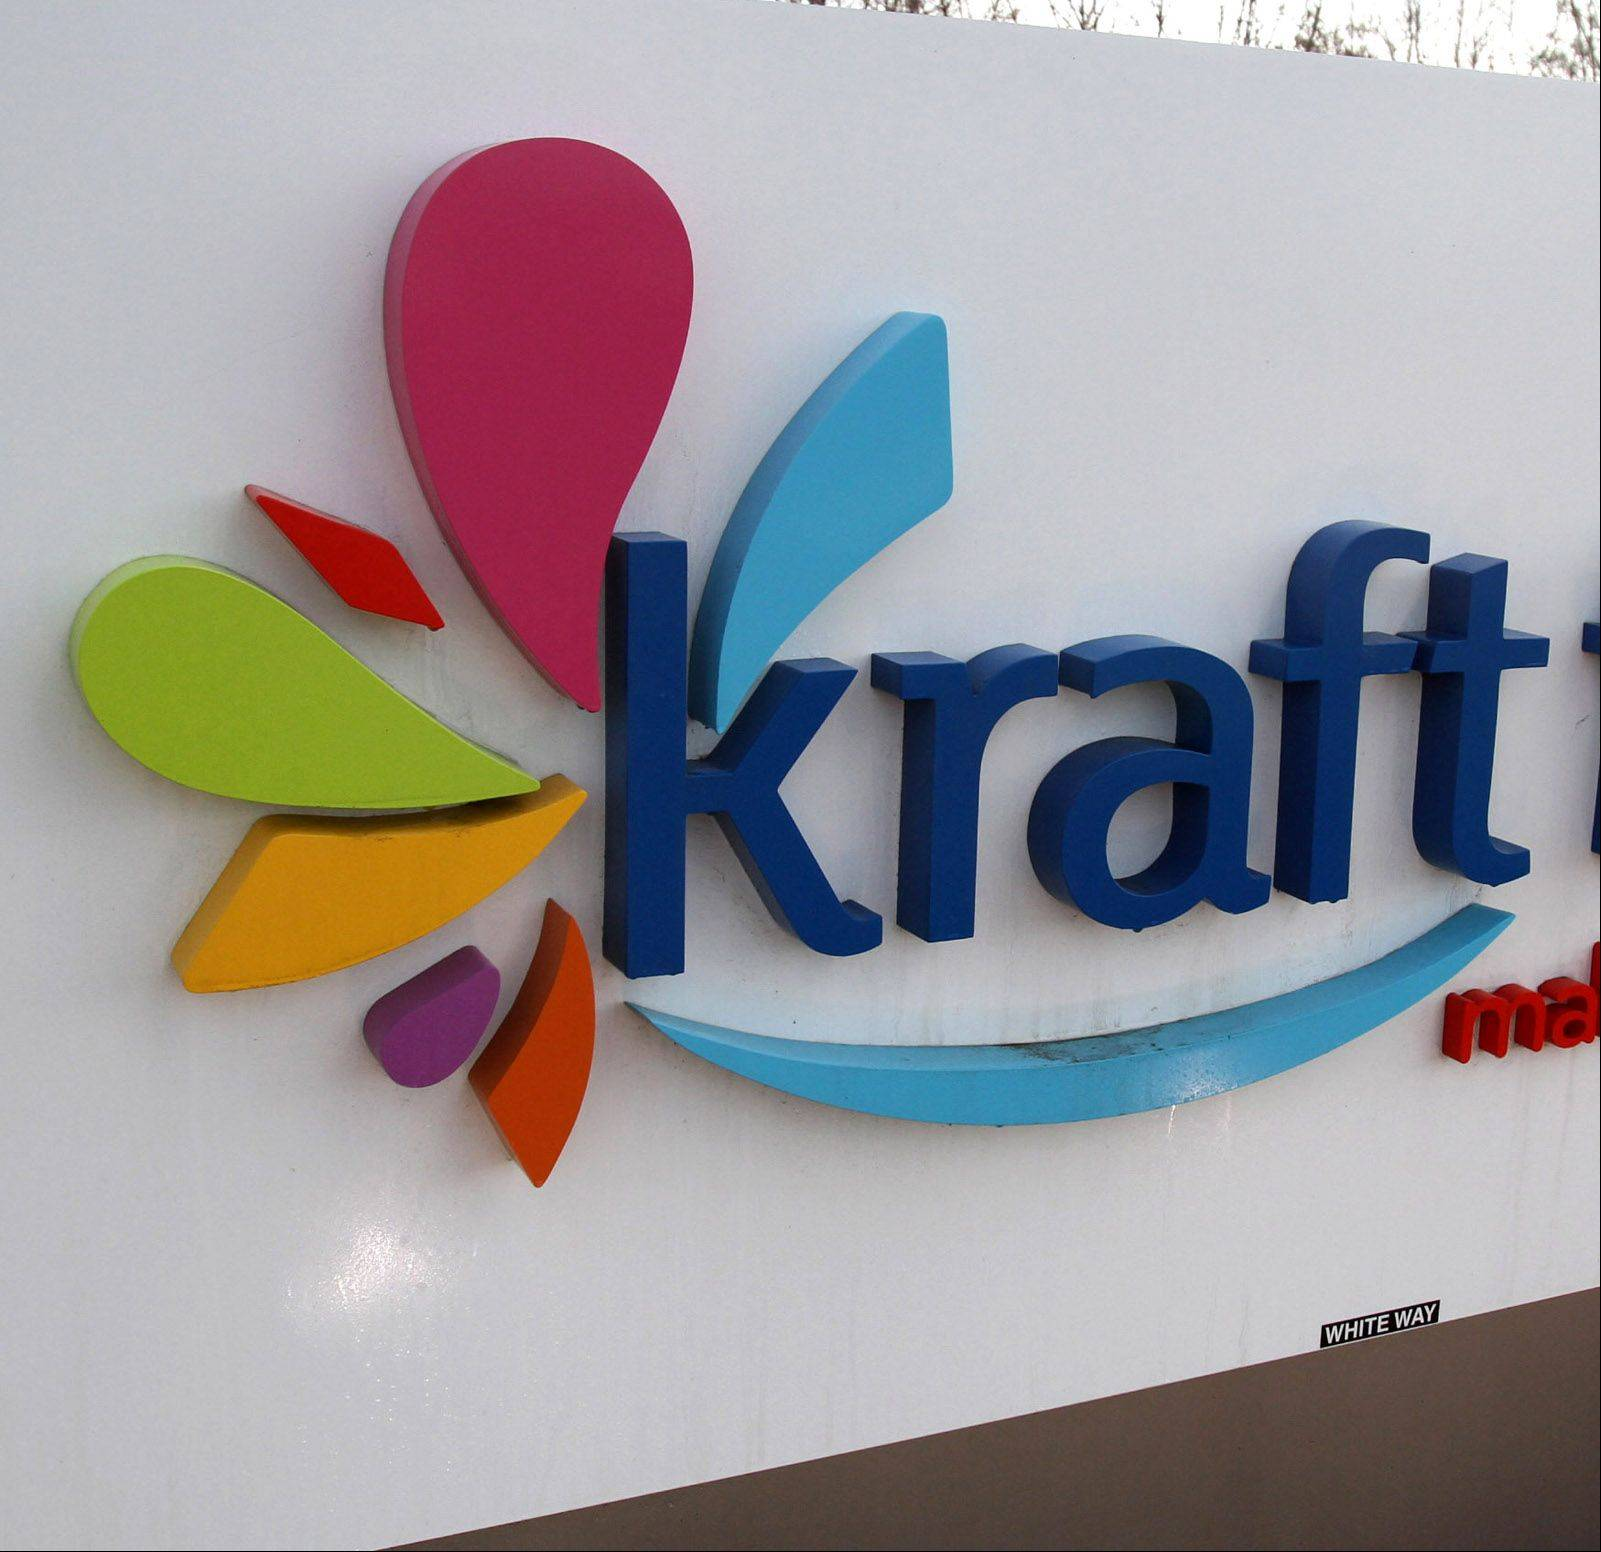 Northfield-based Kraft Foods expects fourth-quarter adjusted earnings above analysts' current estimates, but foresees lower revenue than a year ago.